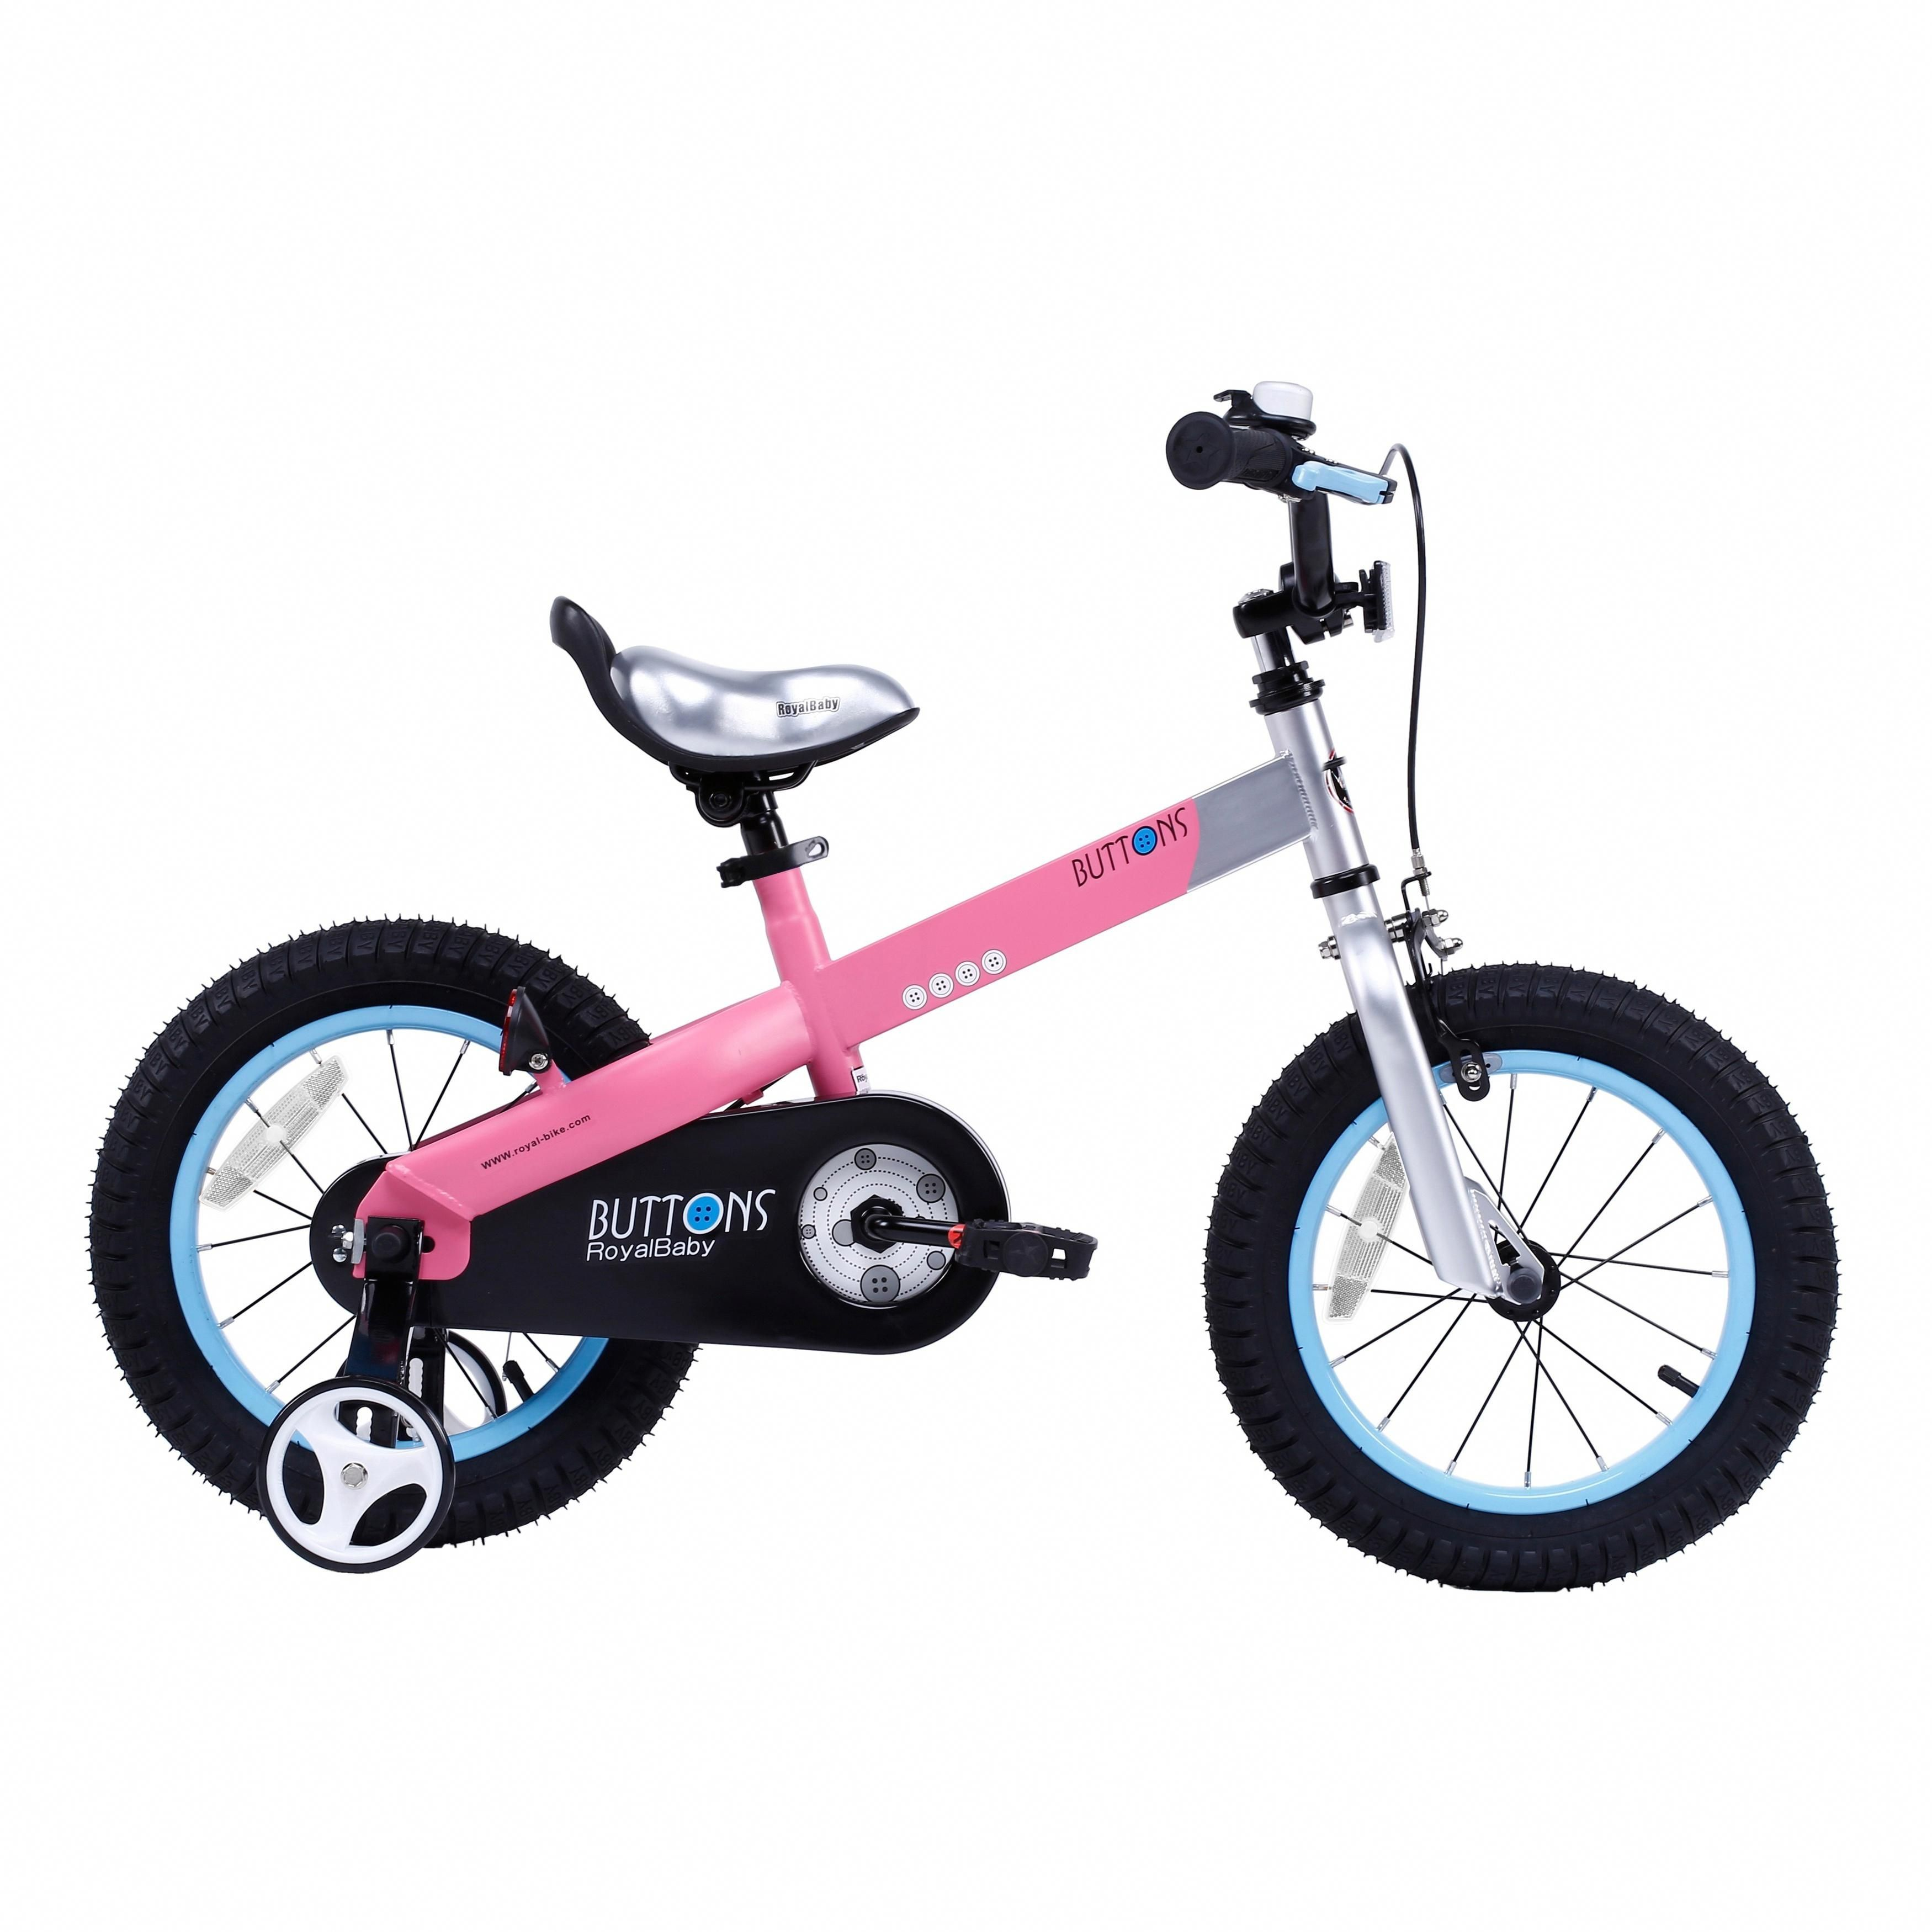 f3d1cd9c9057 Royalbaby Matte Buttons 14-inch Kids' Bike with Training Wheels (Pink)  #bestbikeproducts